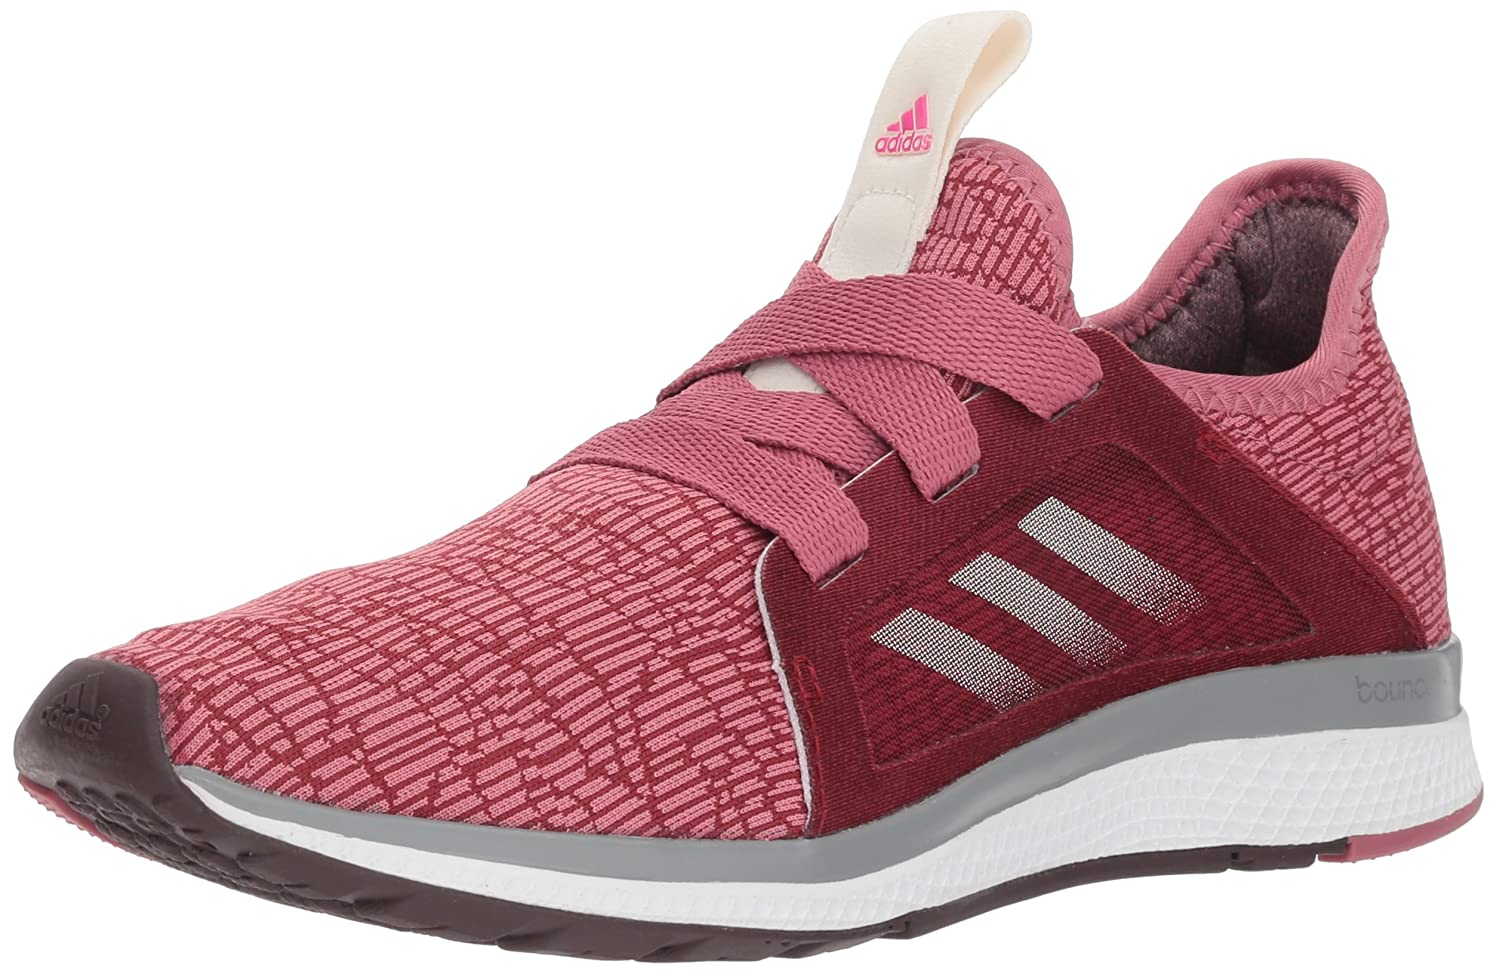 adidas Women's Edge Lux Running Shoe B077XLPWMF 8.5 B(M) US|Noble Maroon/Night Red/Shock Pink